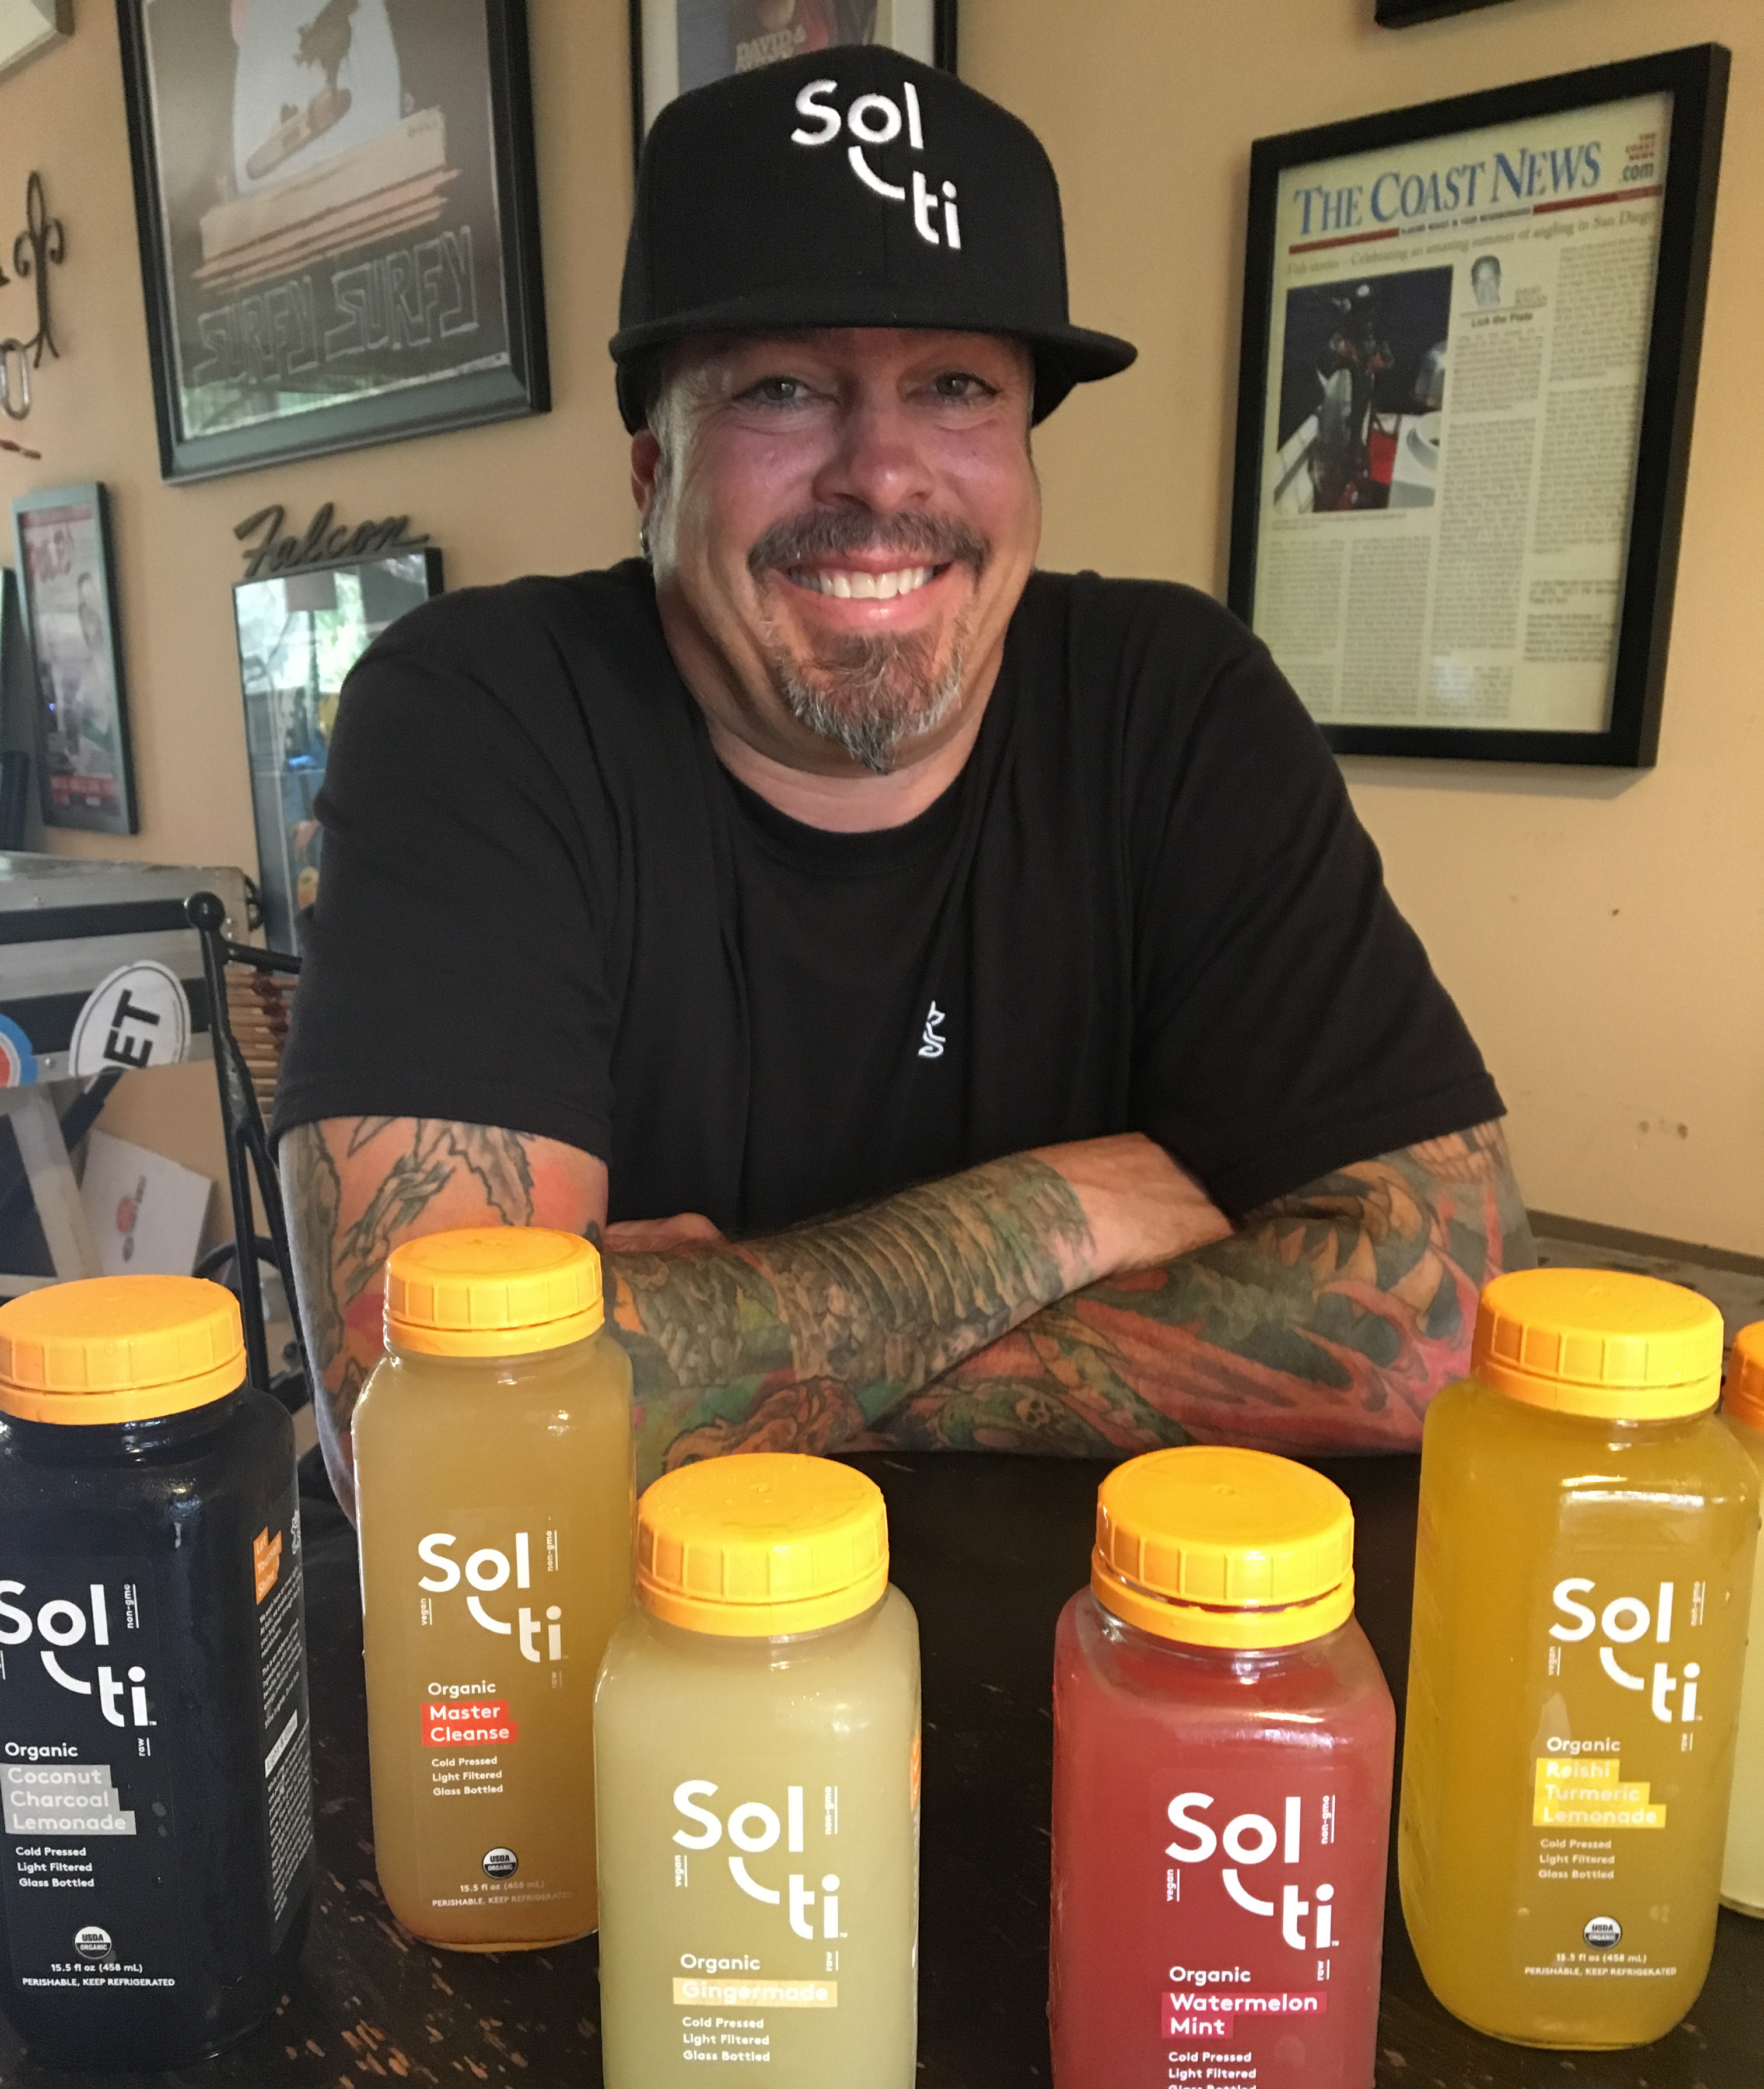 Solti San Diego Regional Sales Manager Christian Sutton with some of their fabulous juice. Photo David Boylan